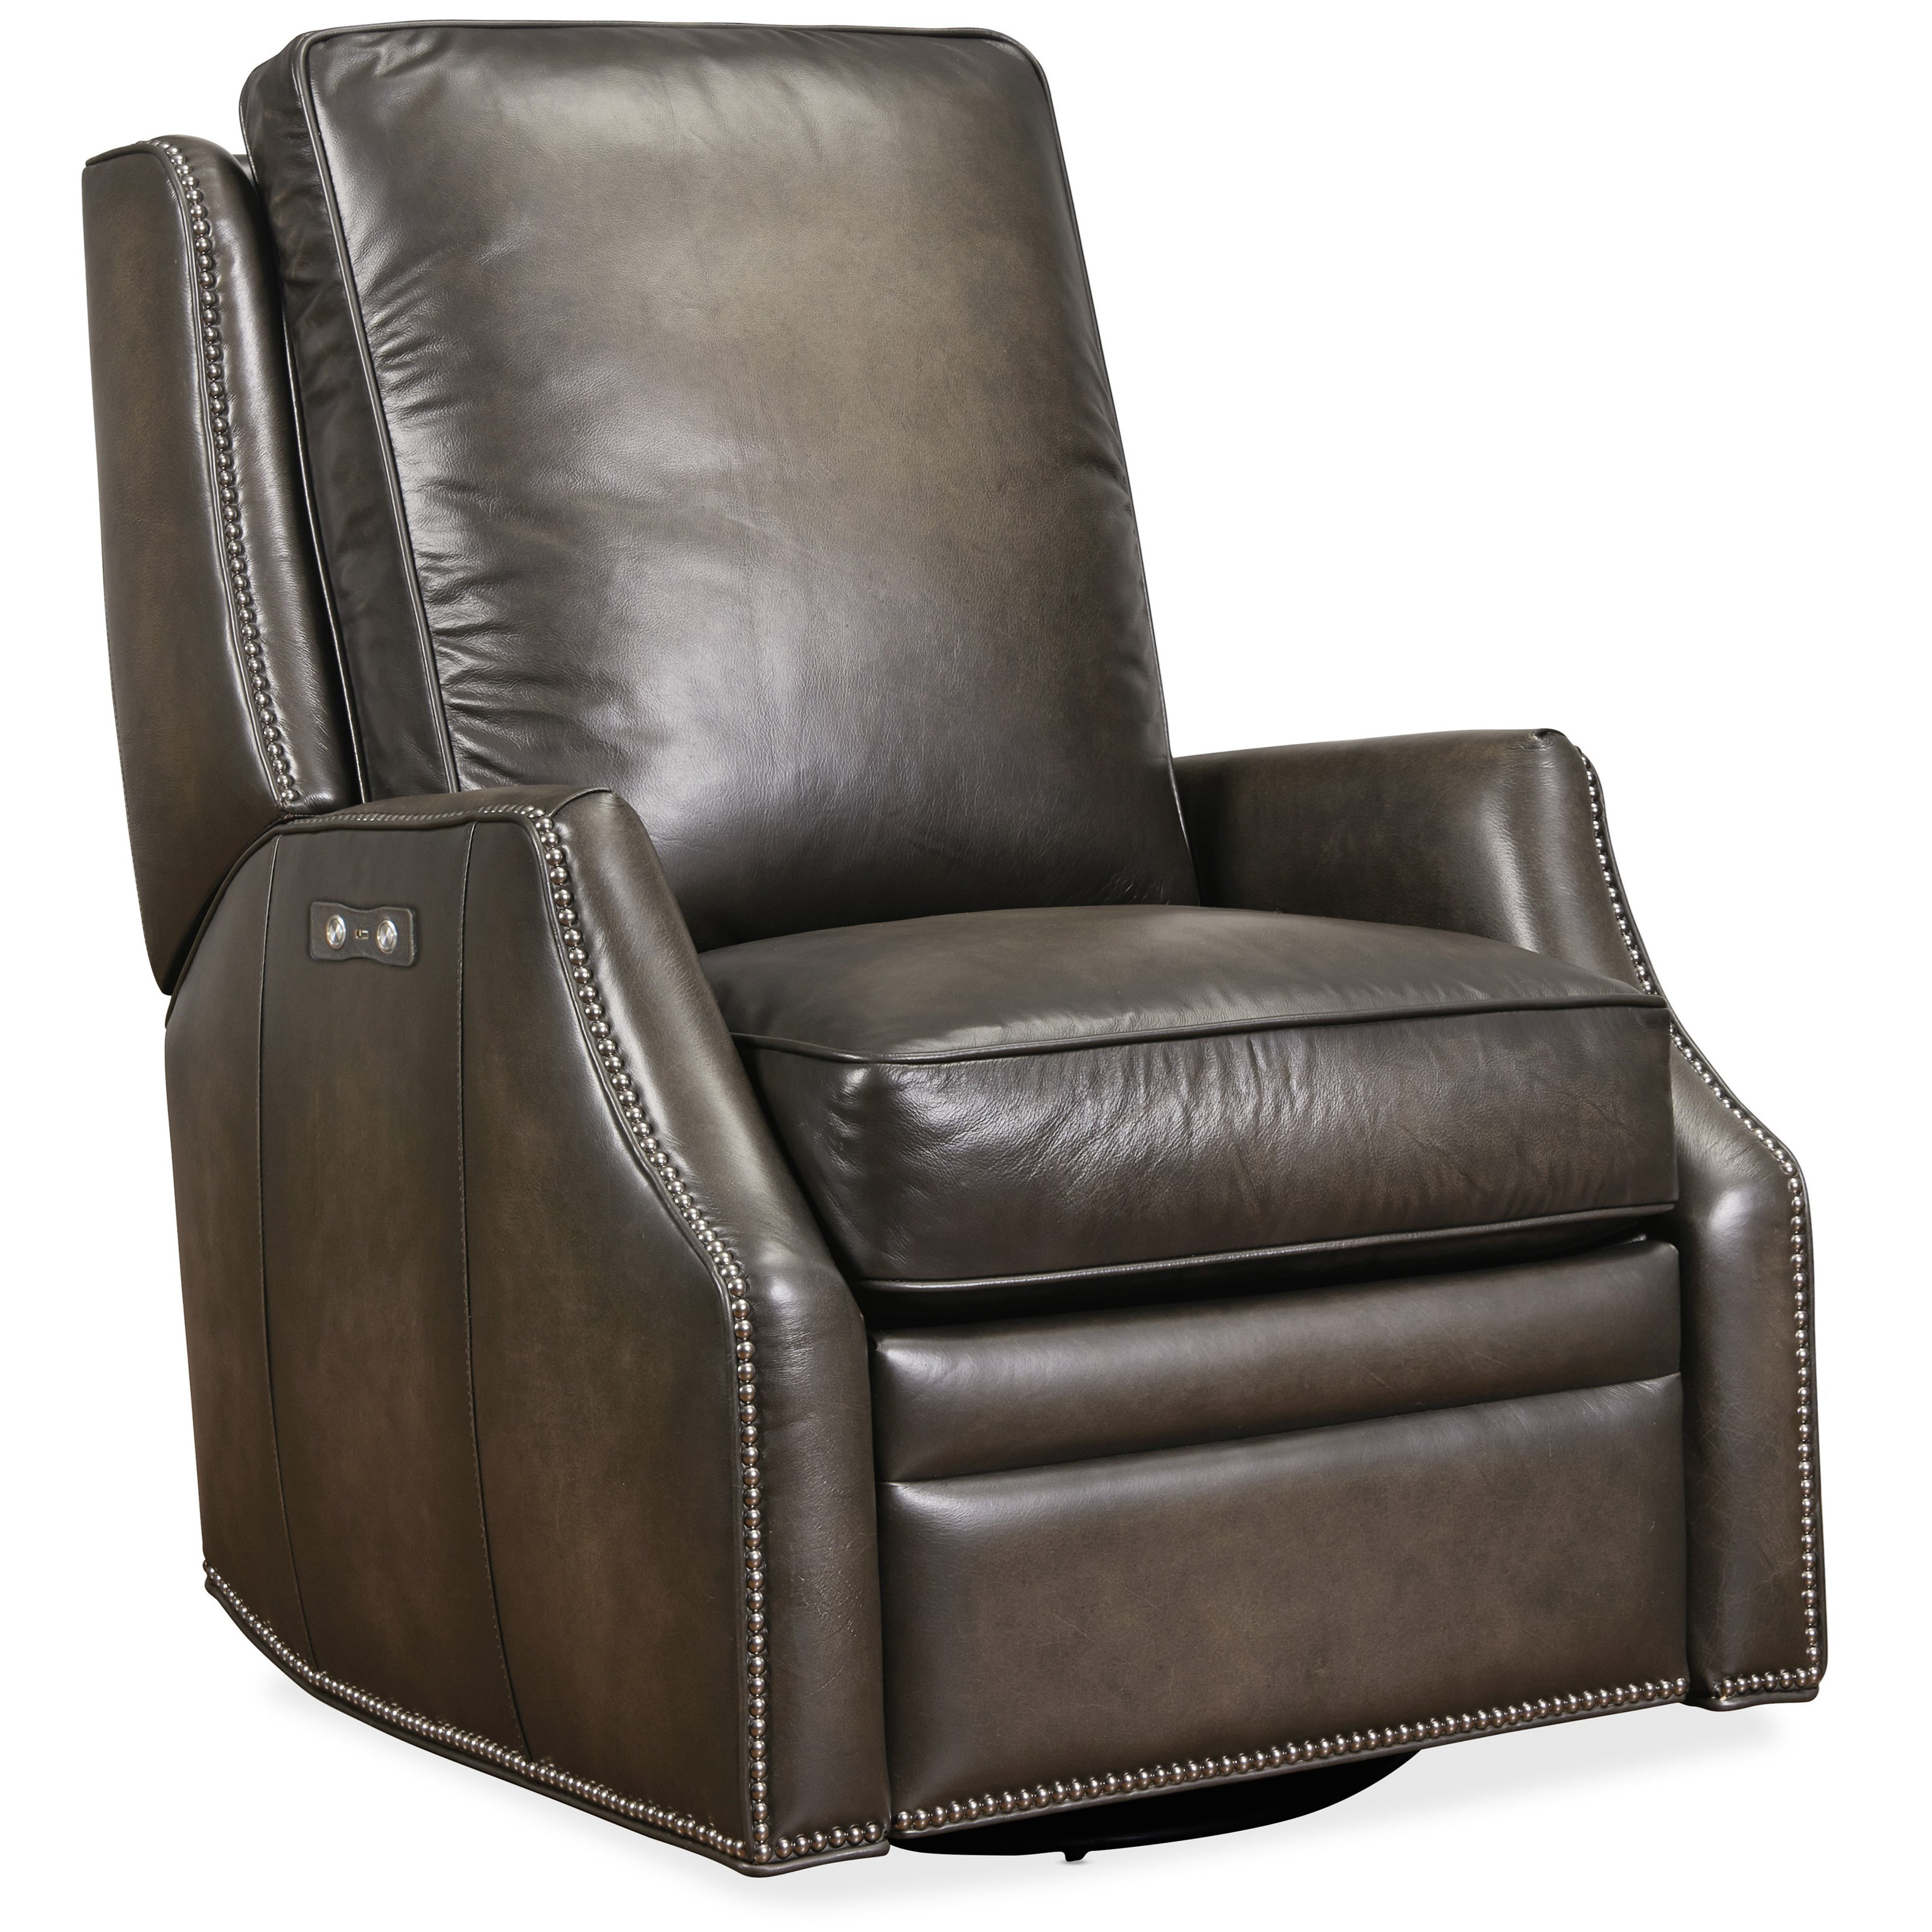 Kerley Power Swivel Glider Recliner by Hooker Furniture at Miller Waldrop Furniture and Decor